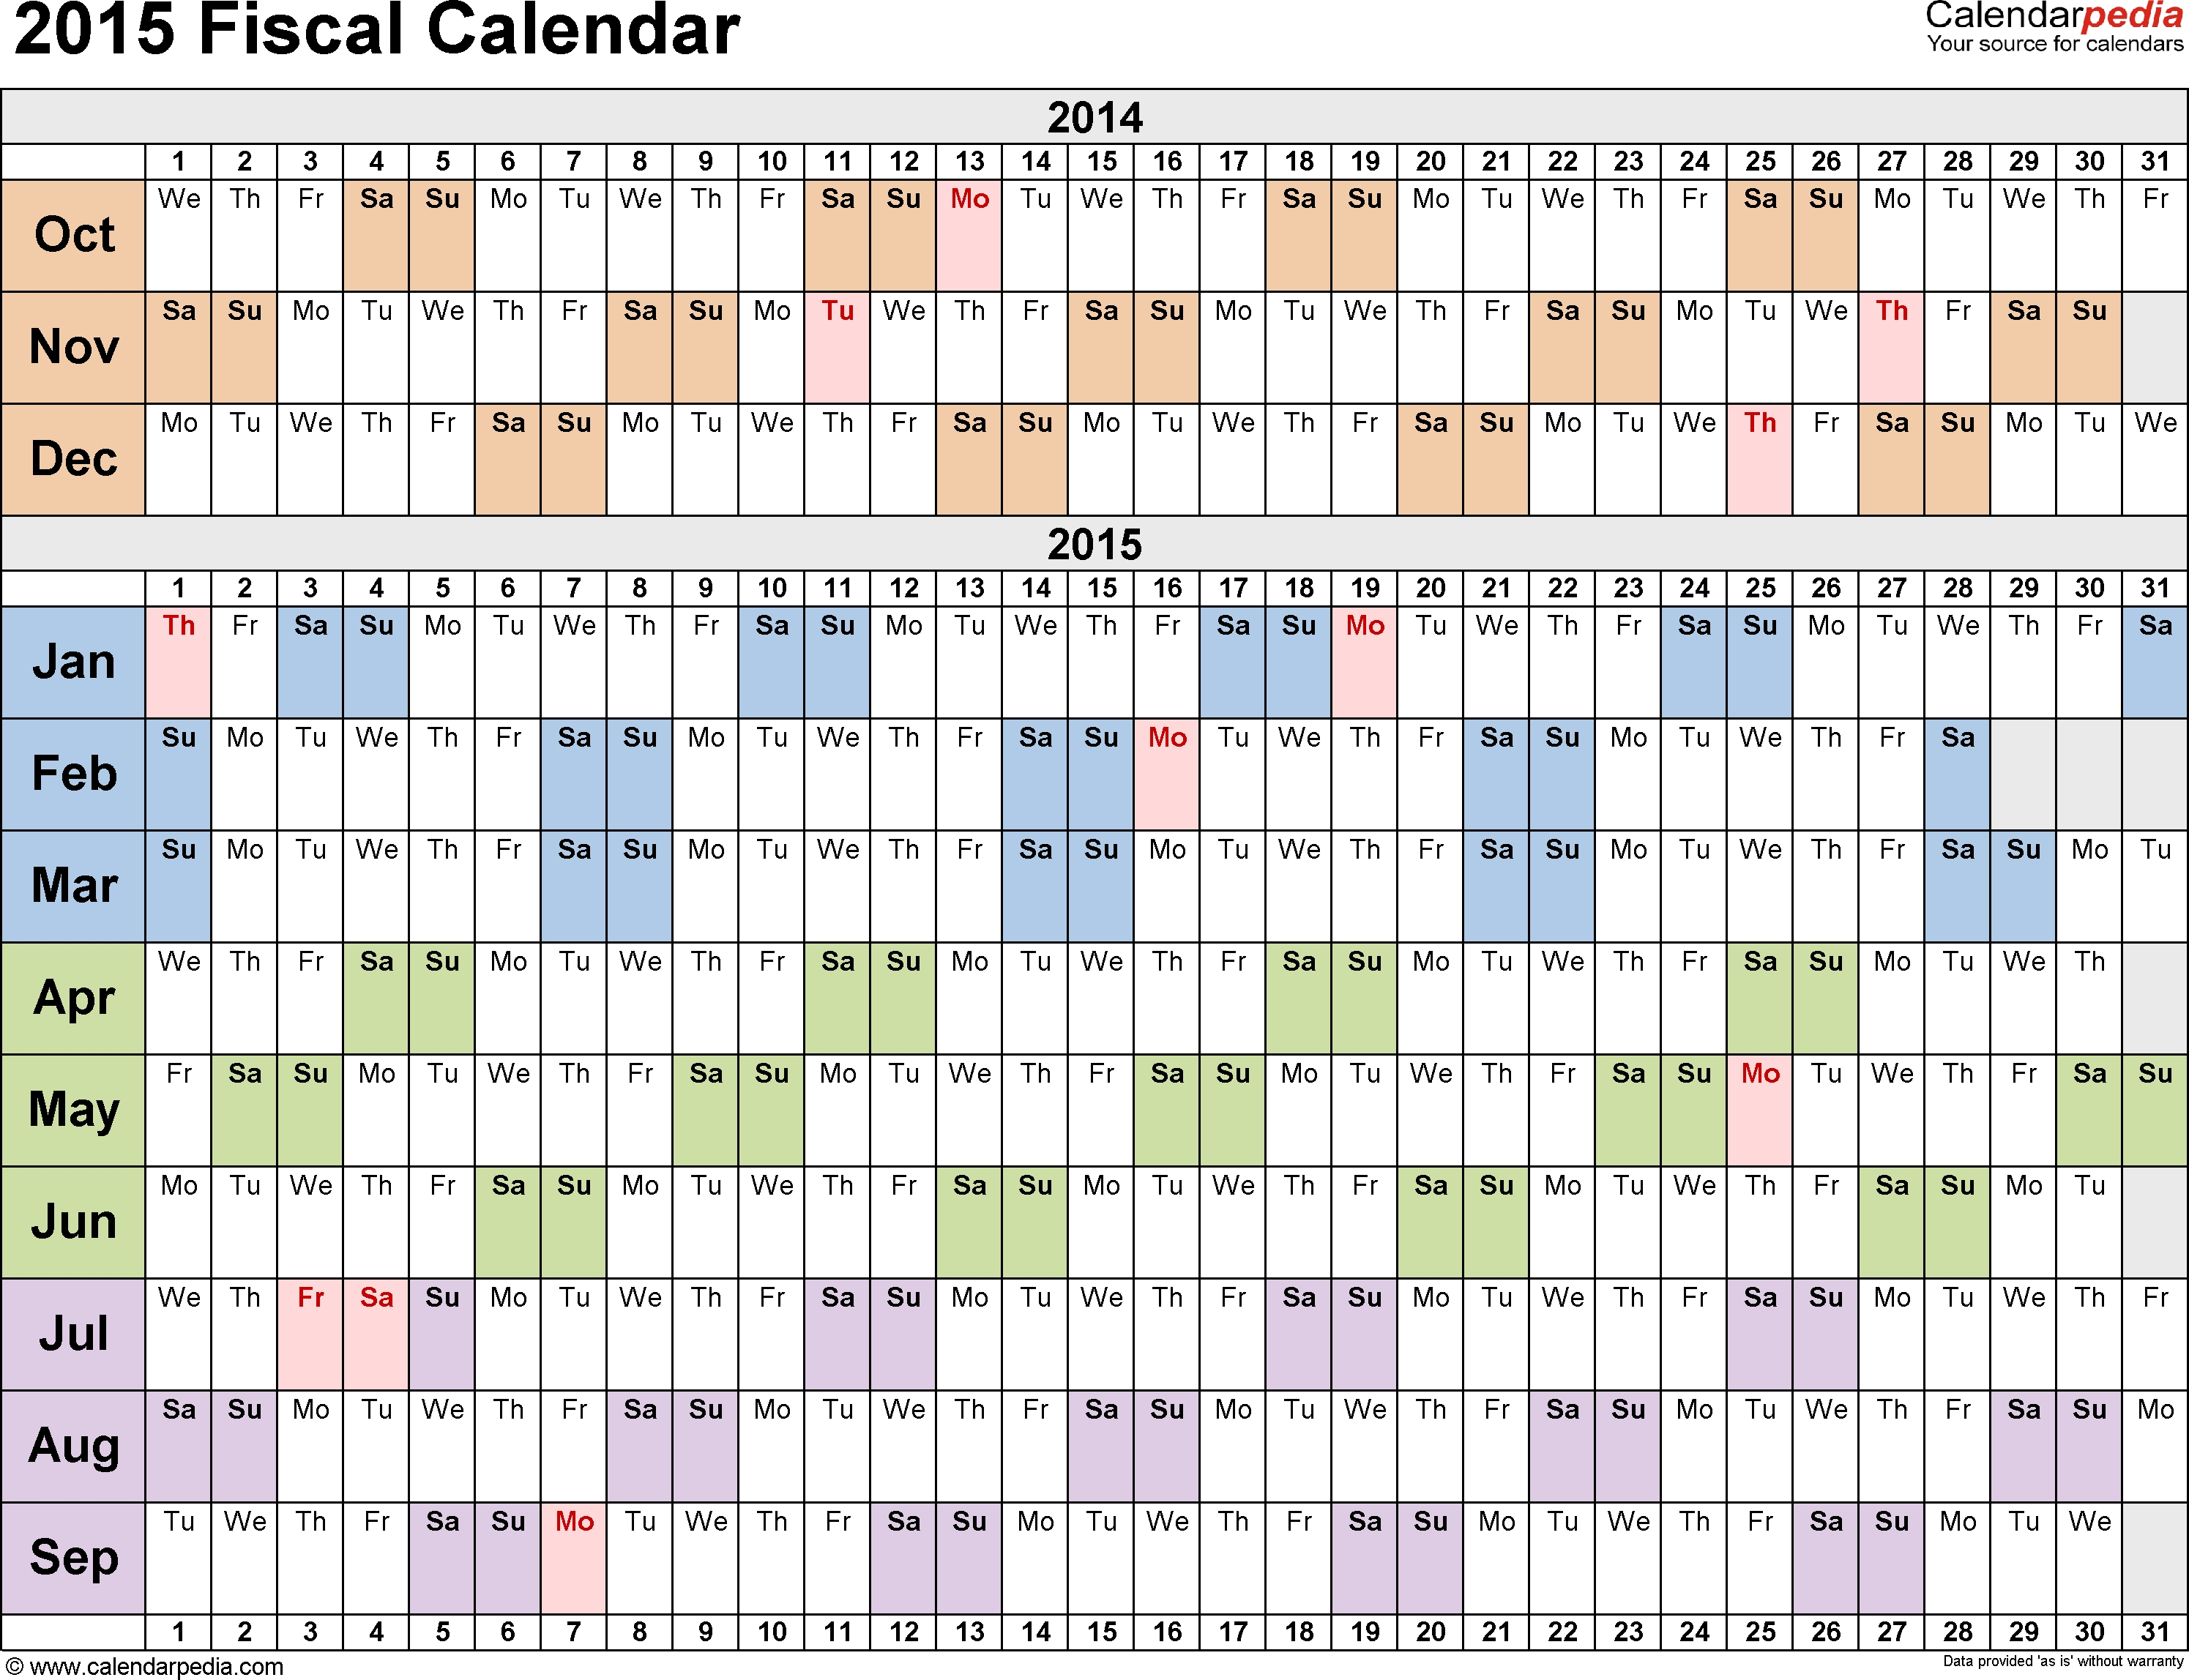 Fiscal Calendars 2015 As Free Printable Pdf Templates within Calendar Year Vs Fiscal Year